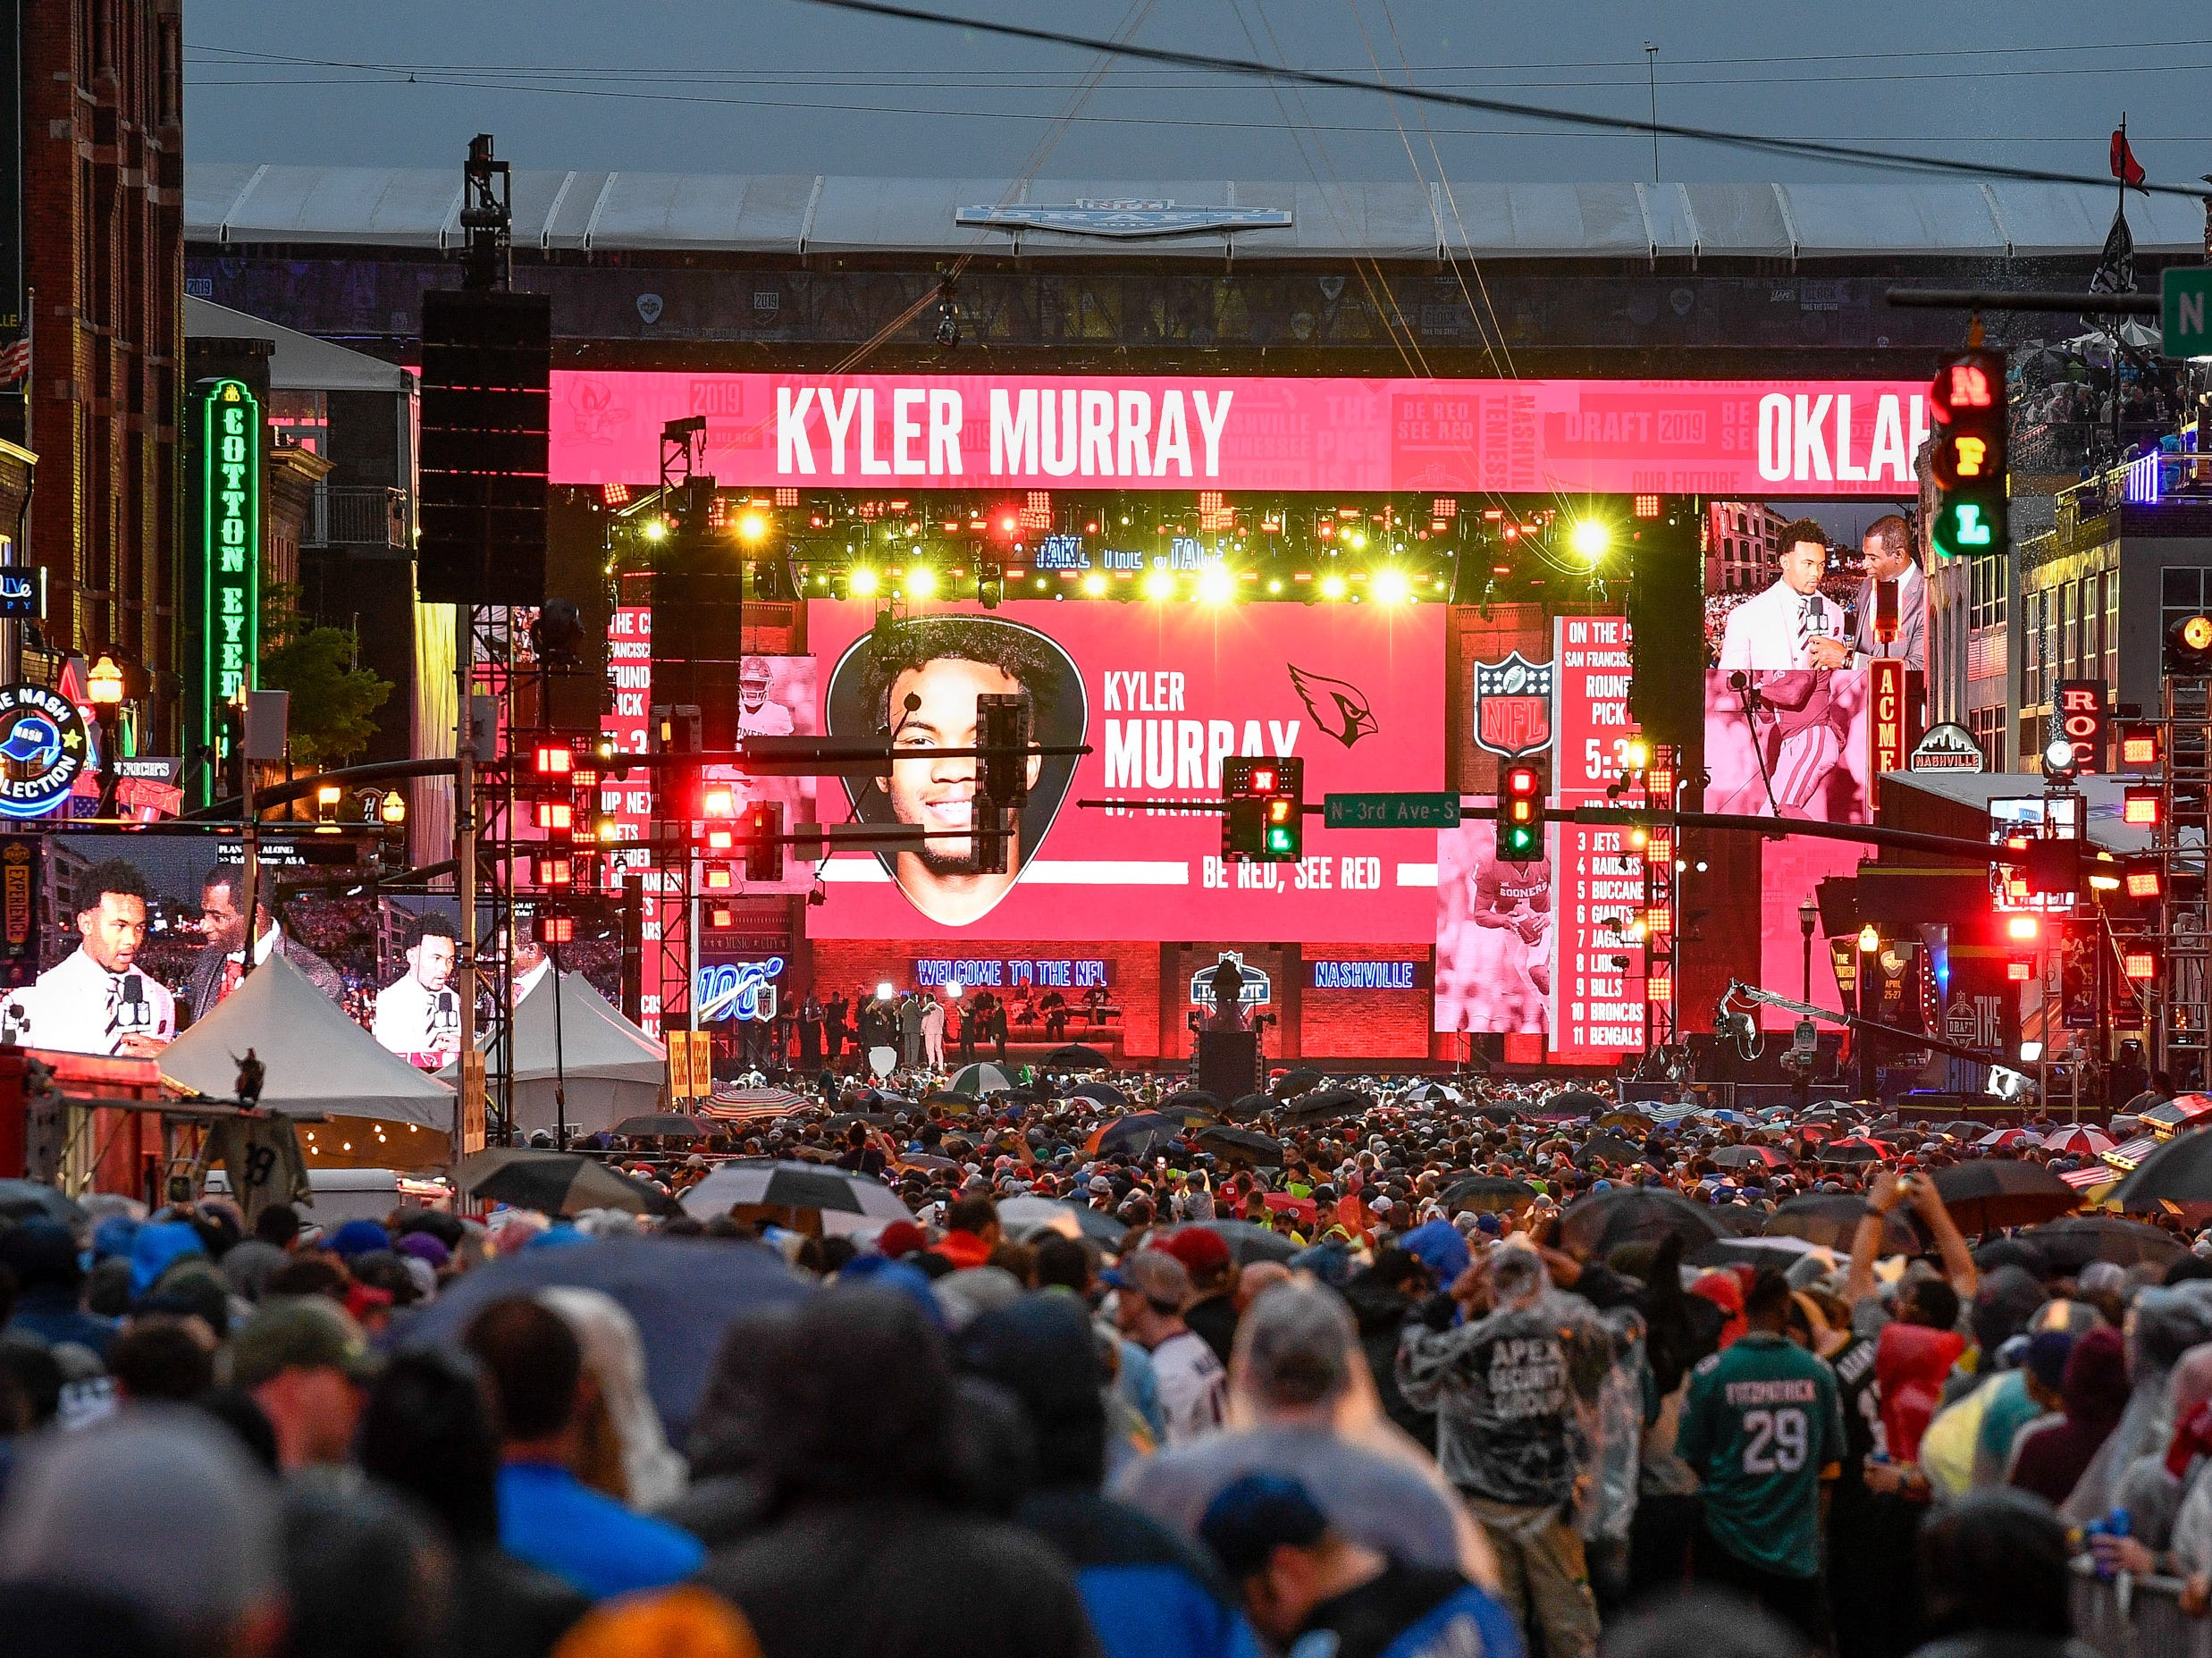 Fans watch as Kyler Murray was selected during the 2019 NFL Draft on Broadway in Nashville, Tenn., Thursday, April 25, 2019.